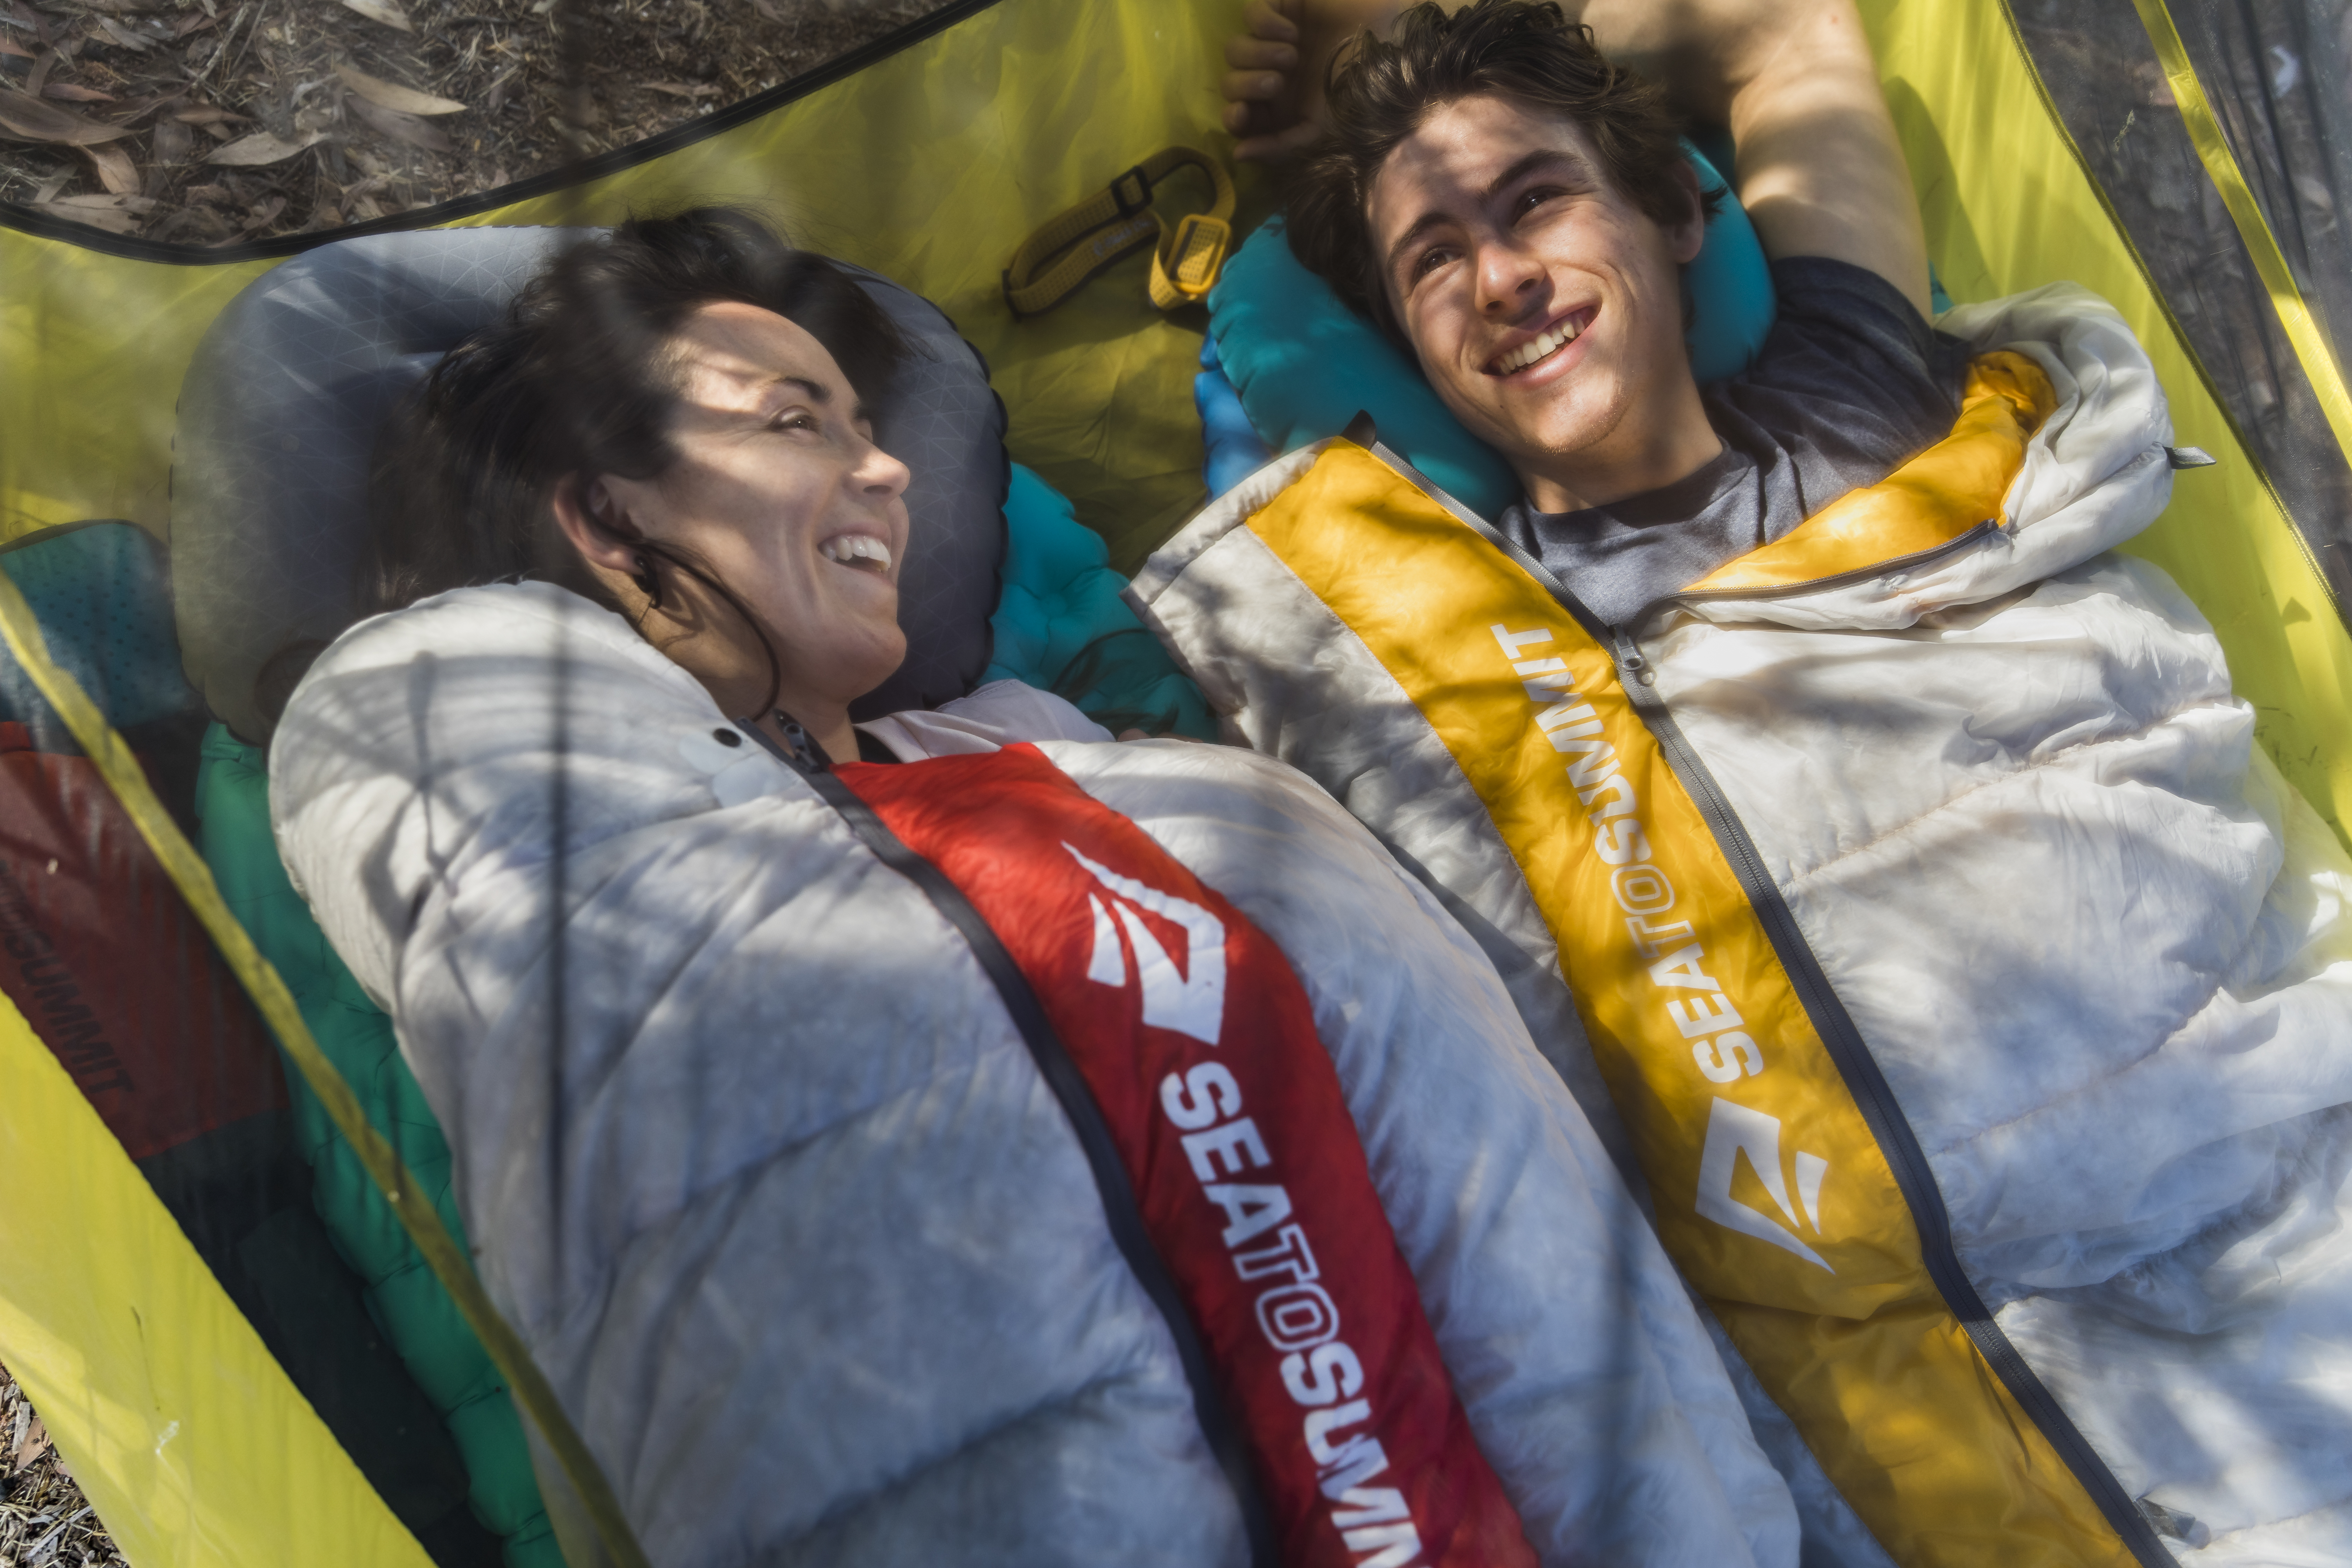 HOW TO CHOOSE THE BEST SLEEPING BAG FOR YOU